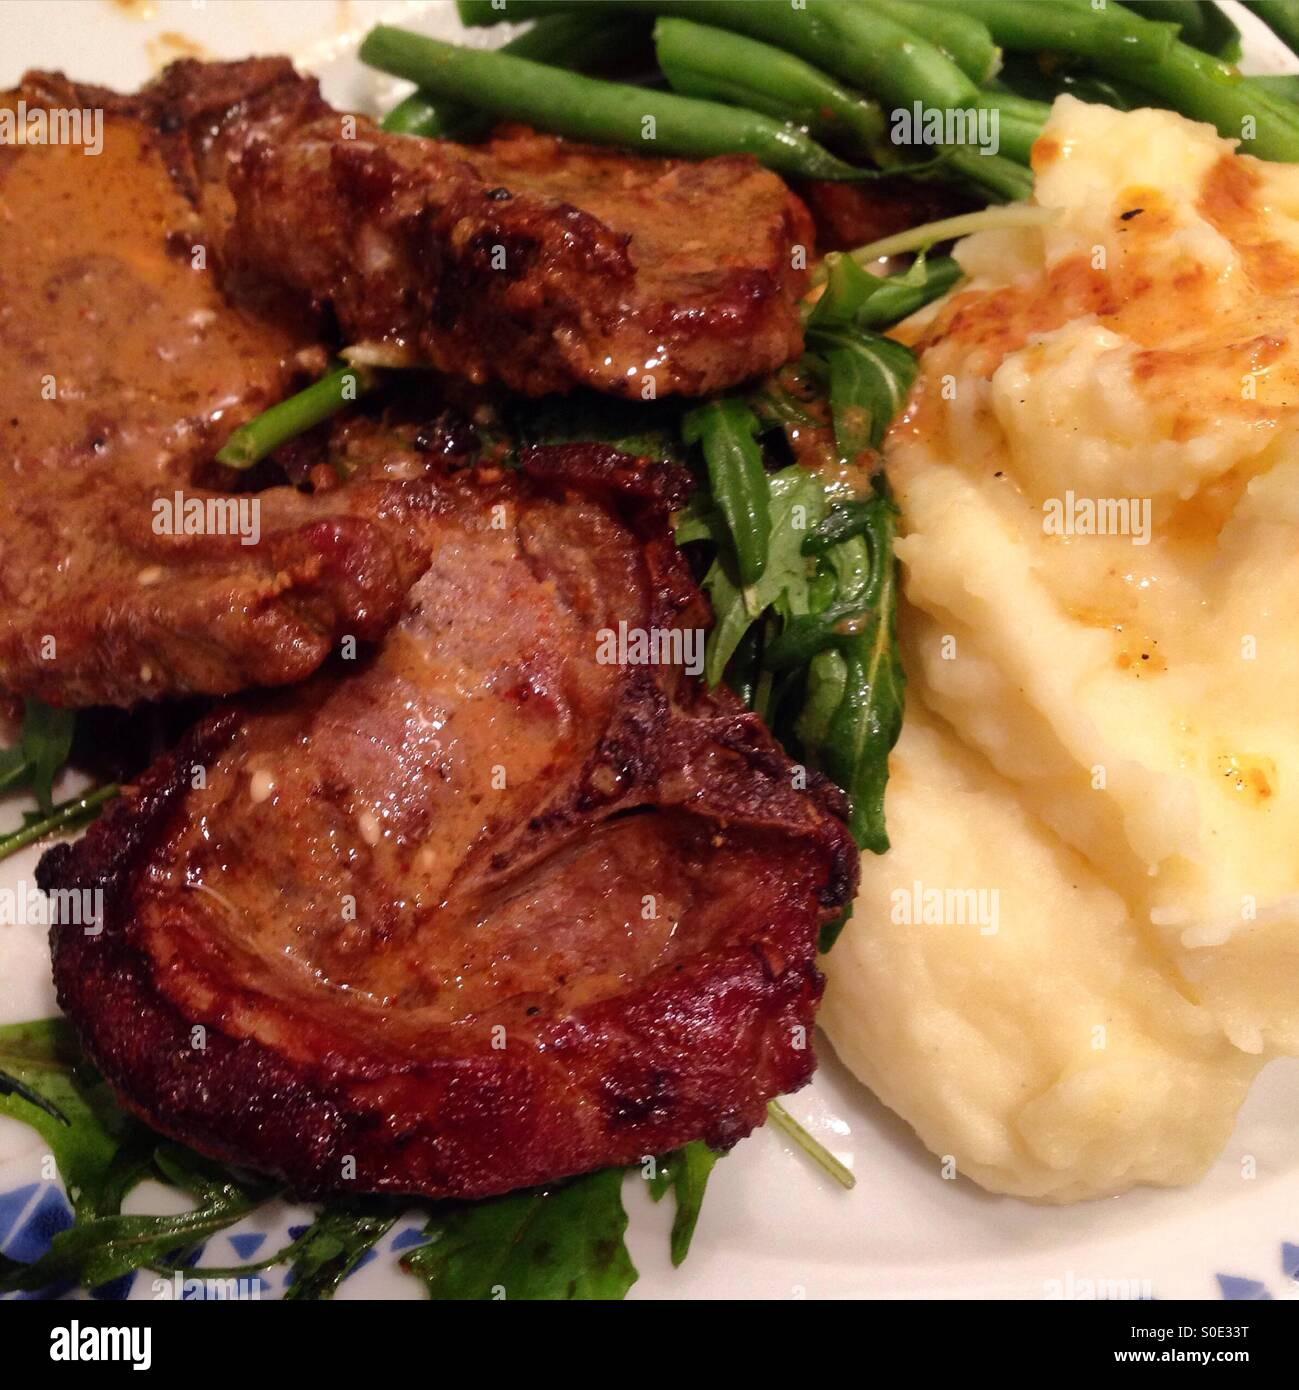 Pork chops, mash potato, green beans - Stock Image